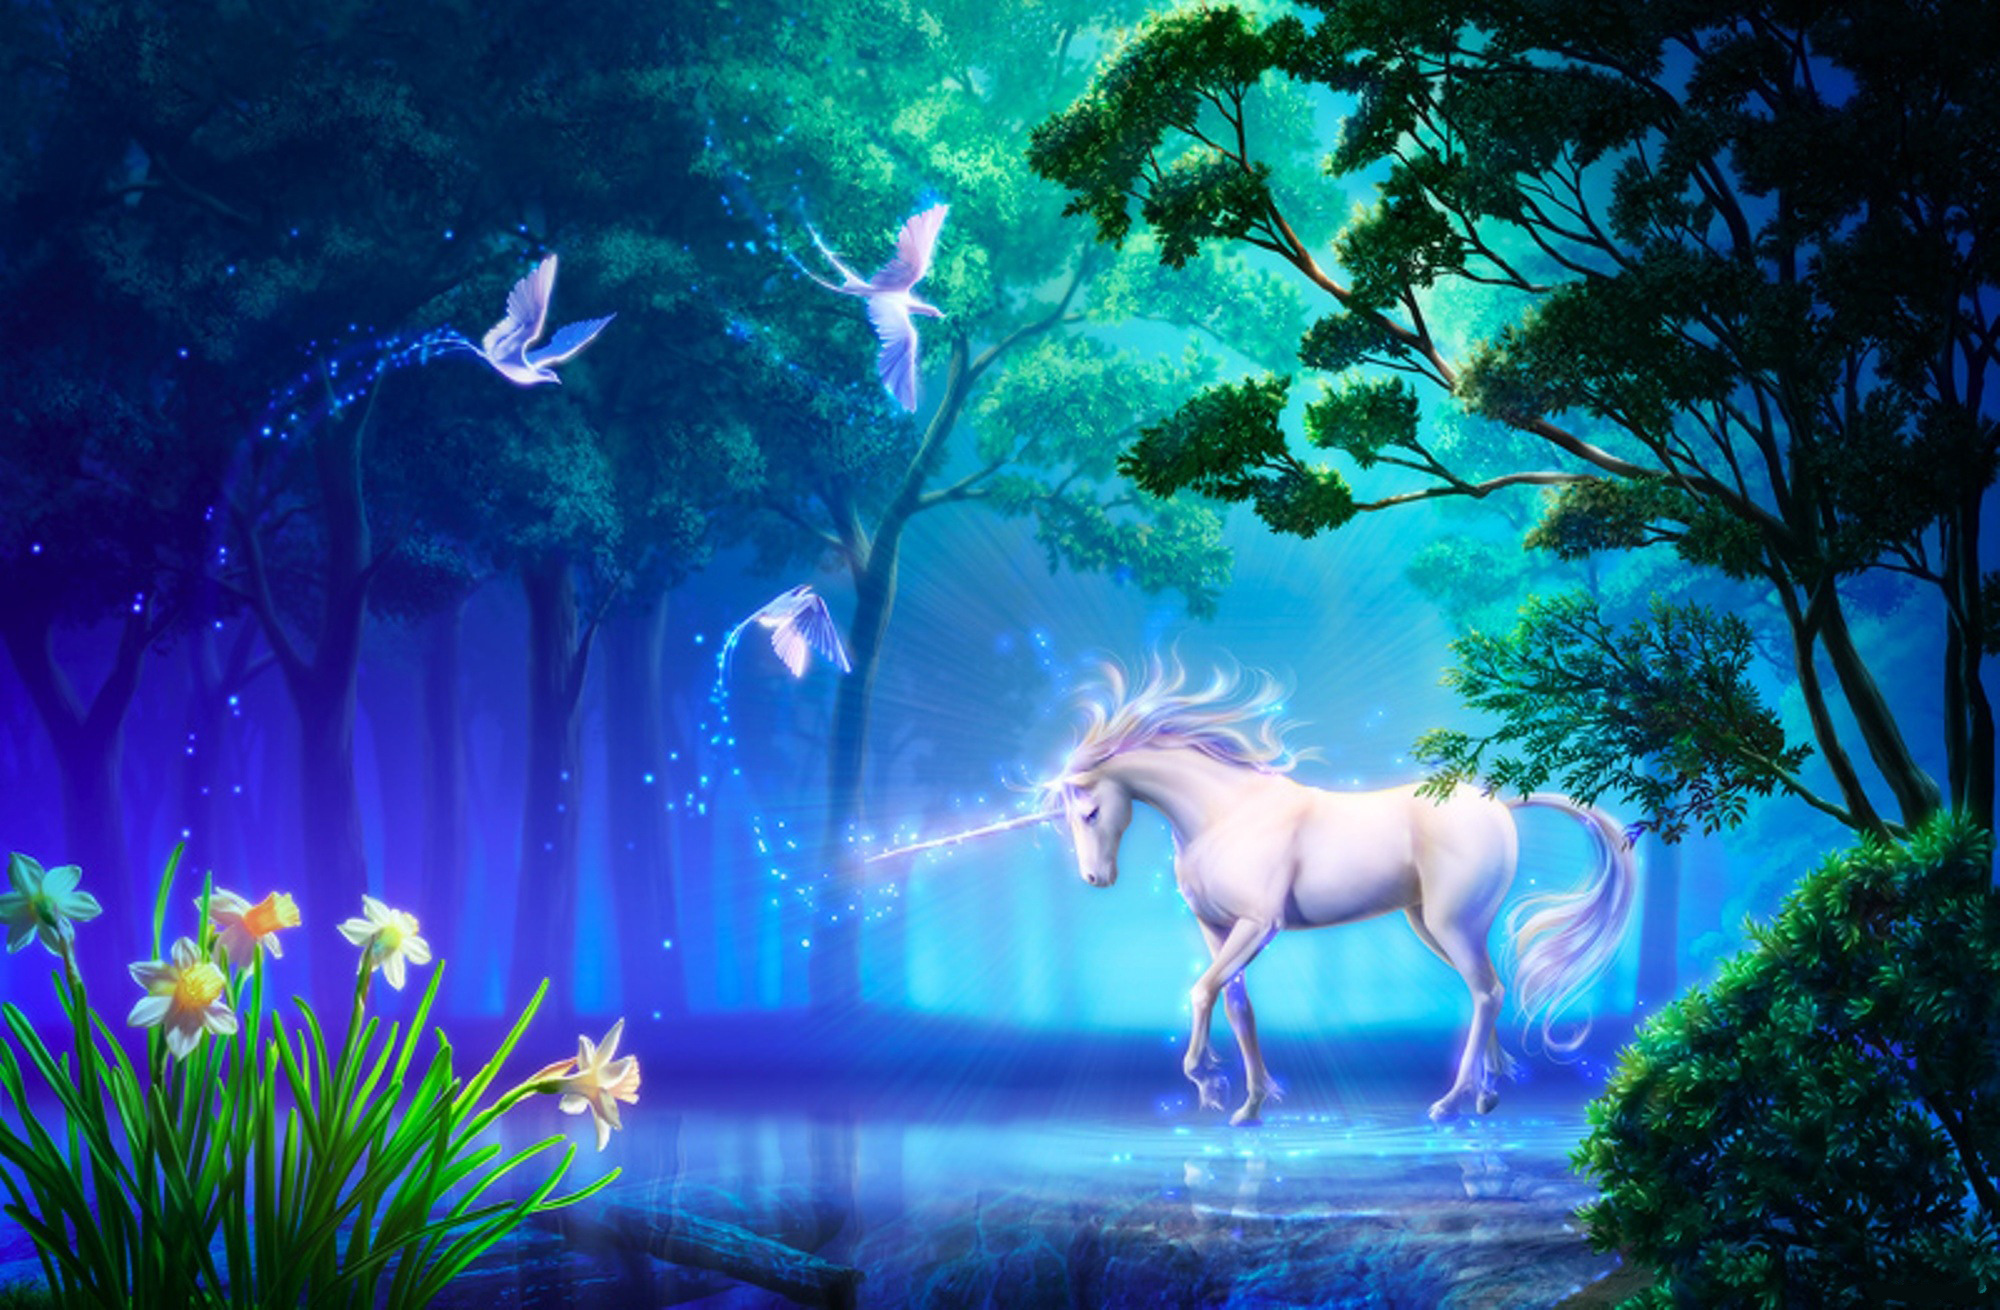 72 unicorn hd wallpapers background images wallpaper abyss hd wallpaper background image id239474 2000x1310 fantasy unicorn voltagebd Images